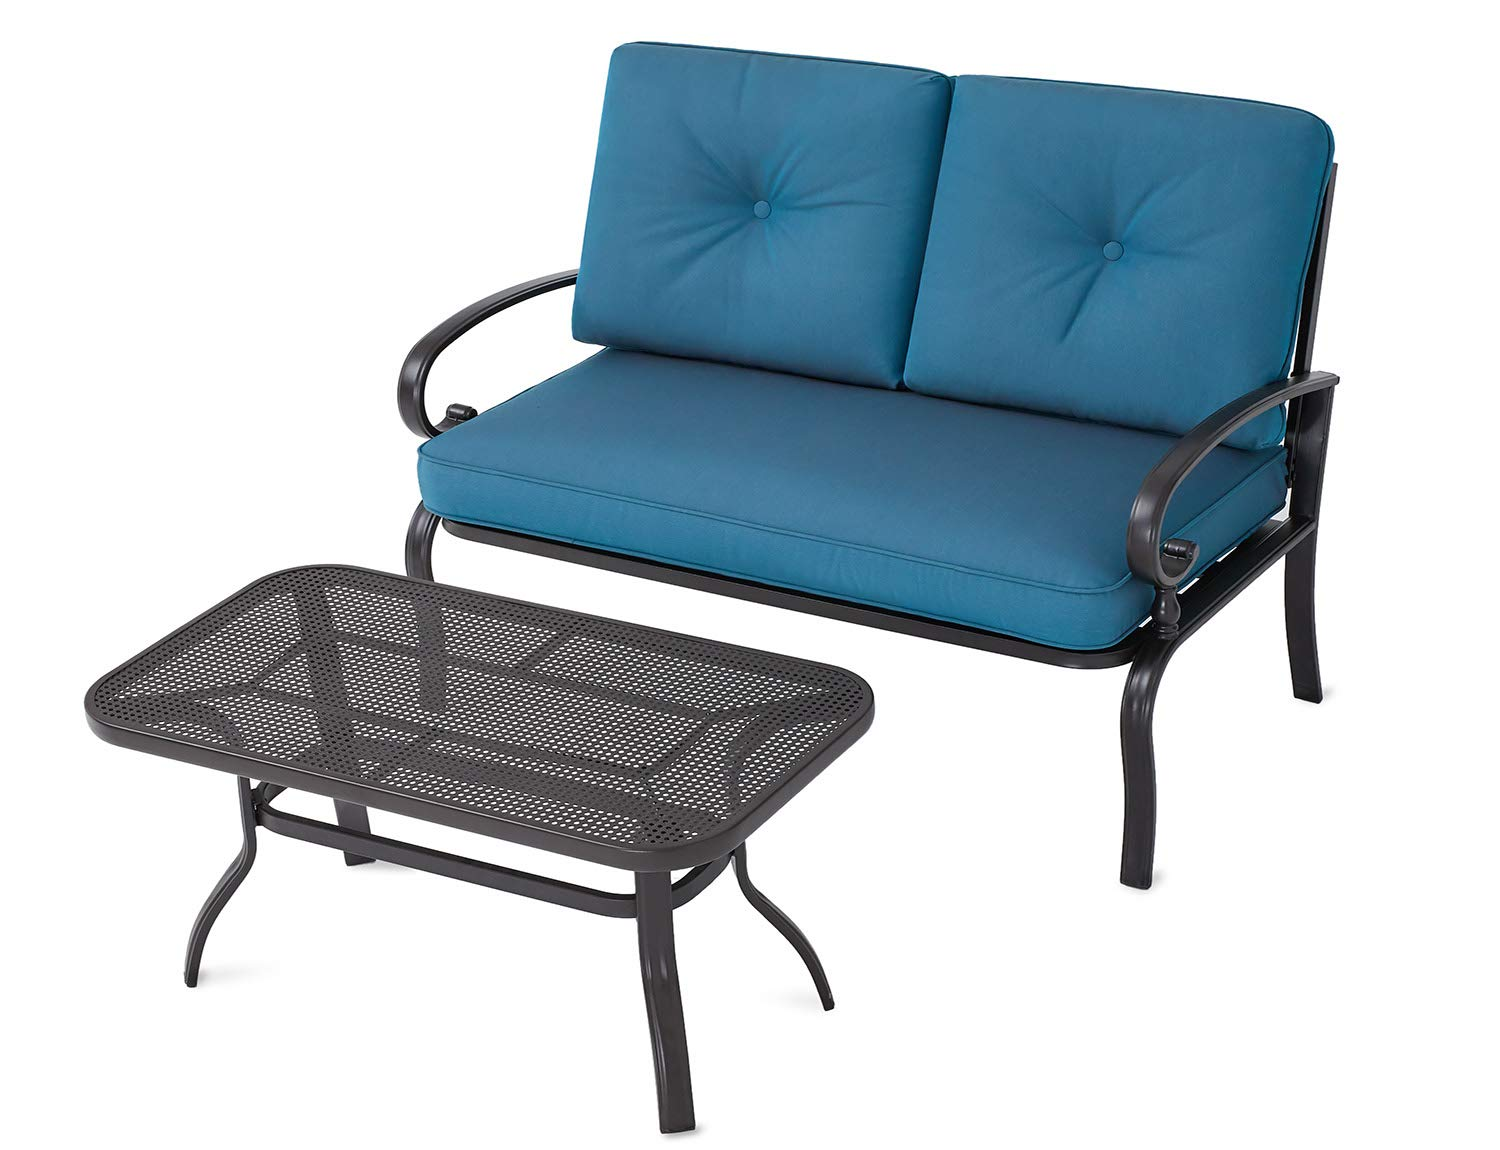 Incbruce Outdoor Patio Furniture LoveSeat 2-Piece & Bistro Coffee Table Set Furniture Bench with Cushion | Lawn Front Porch Garden, Wrought Iron Frame, Navy Blue